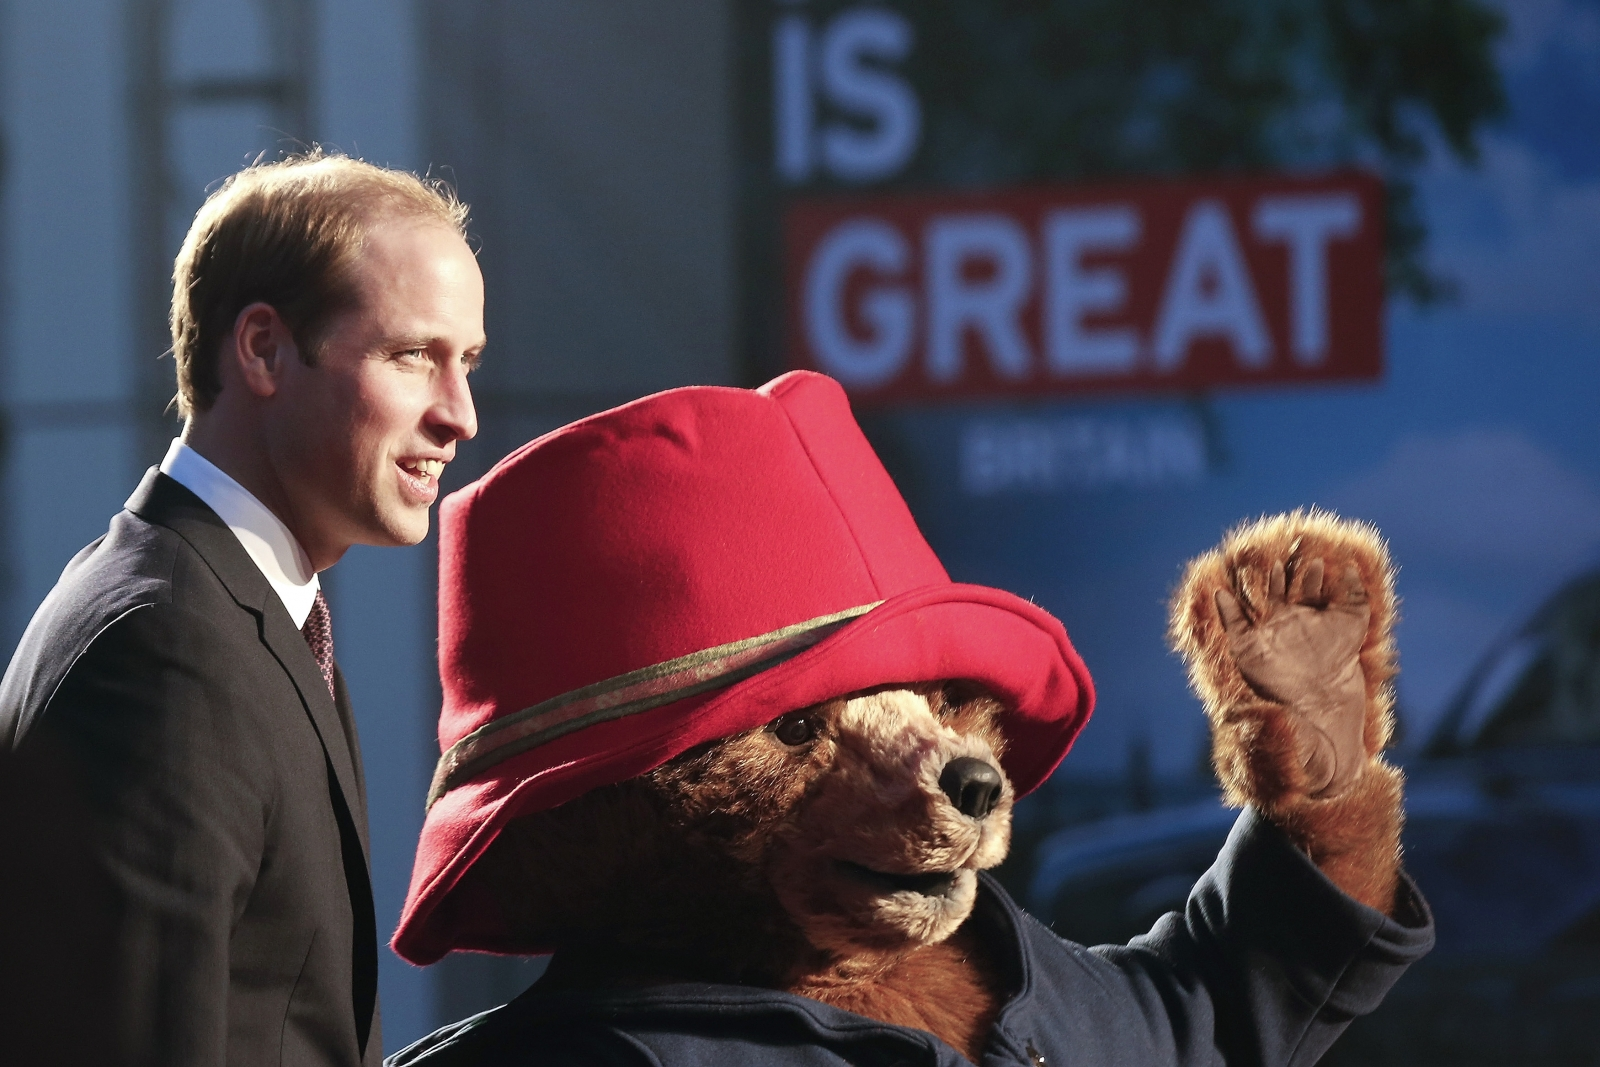 Prince William meets Paddington Bear